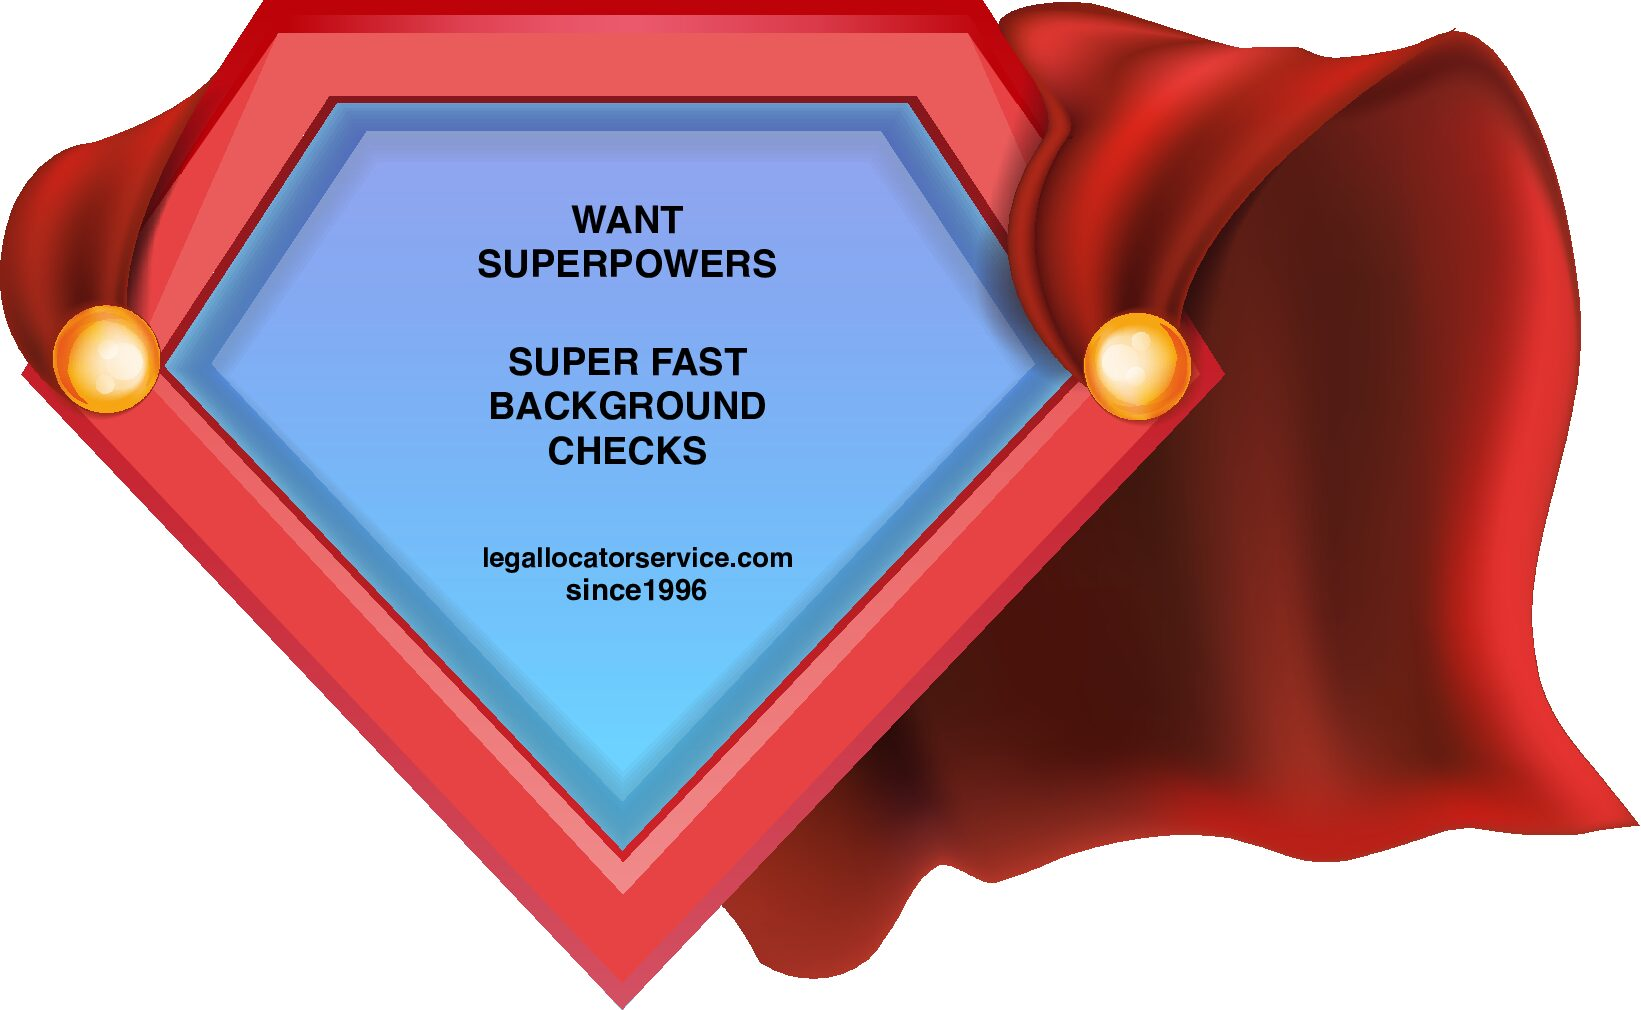 Want Background Check Superpowers